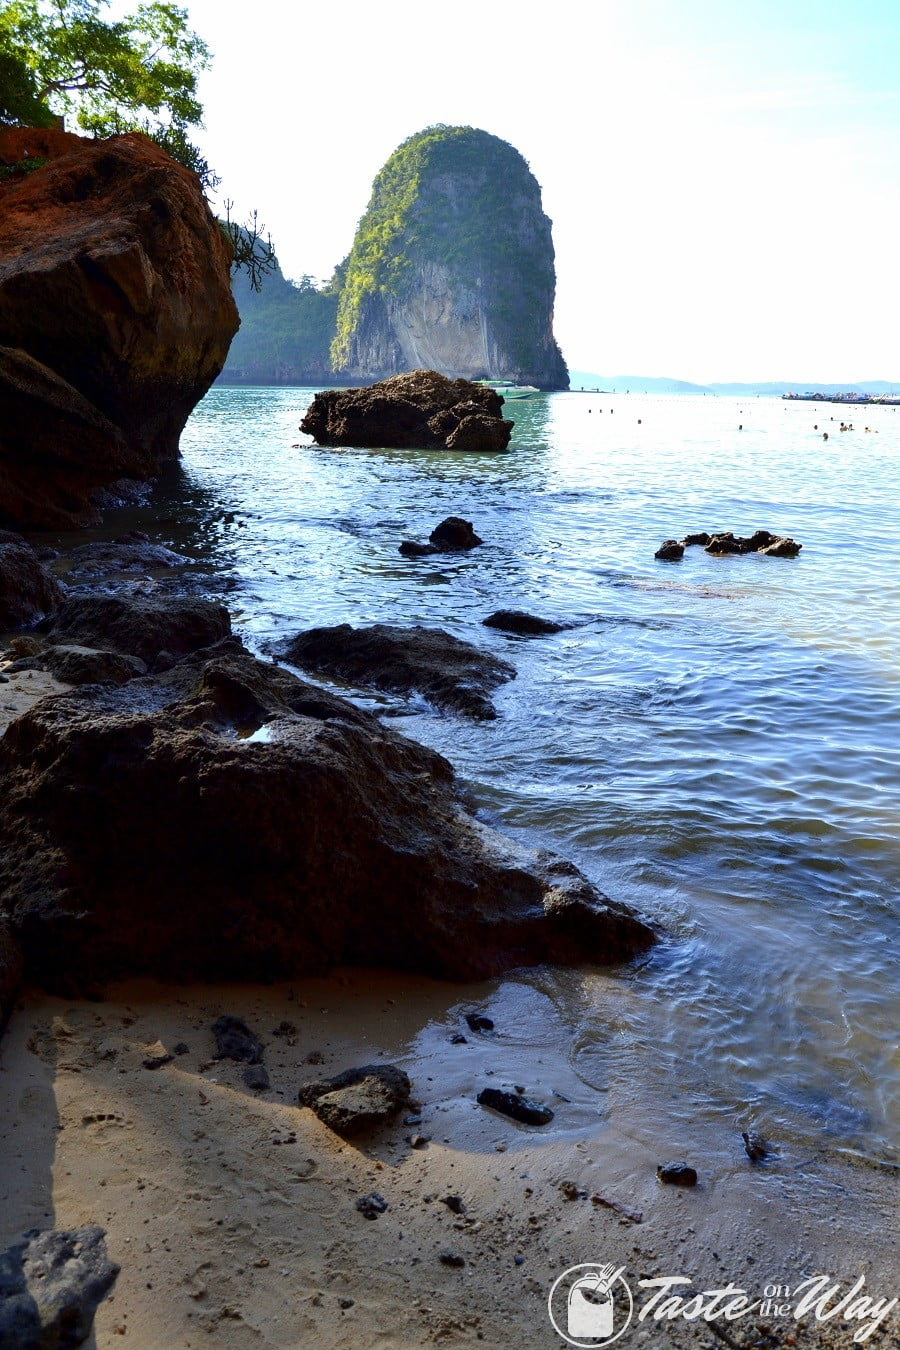 The picturesque coastline of Ao Nang, Krabi #Thailand #travel